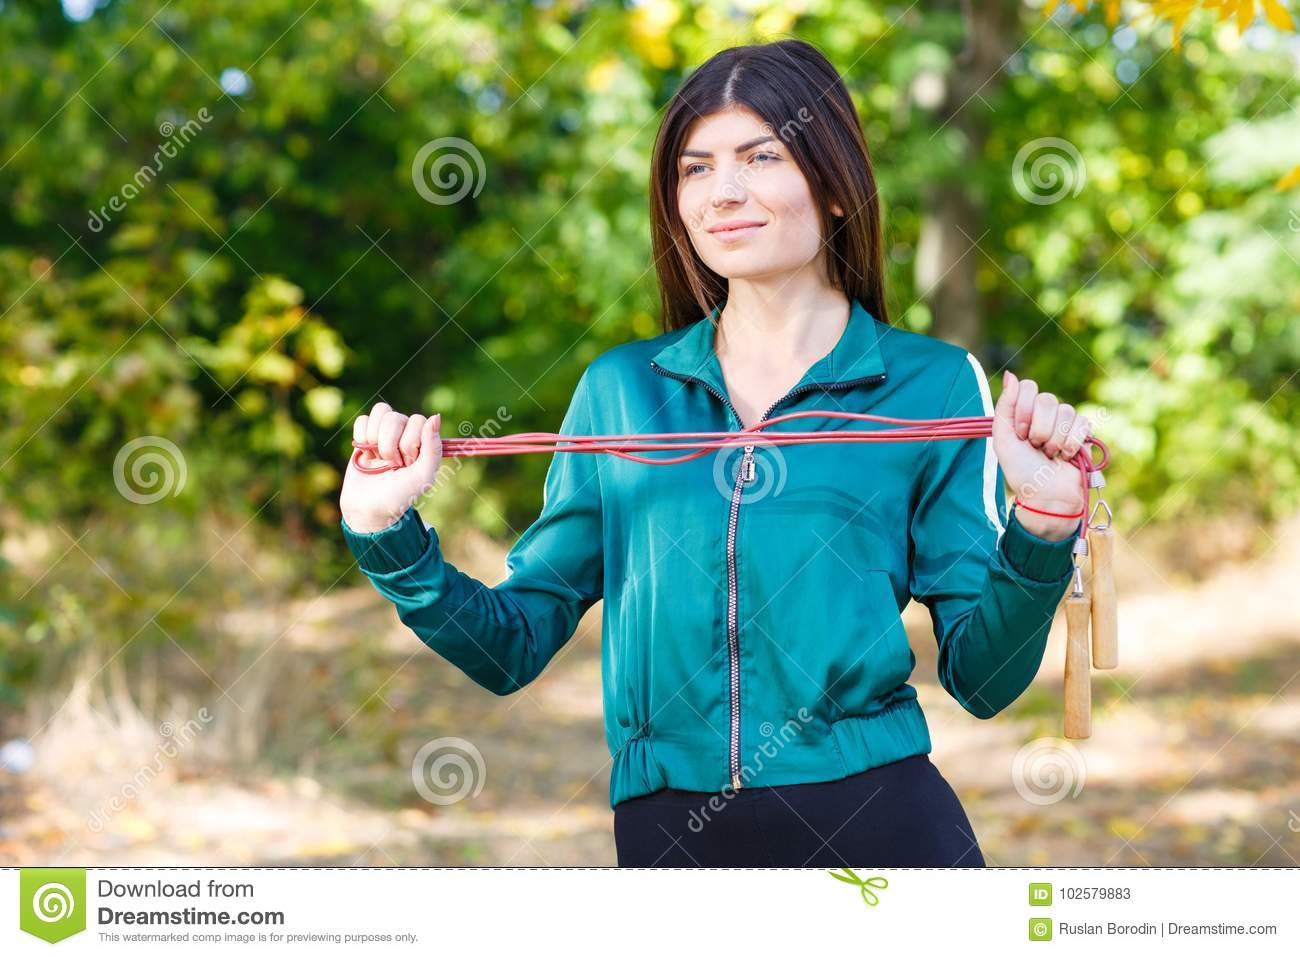 A young sporty woman with skipping rope doing exercises outdoor.